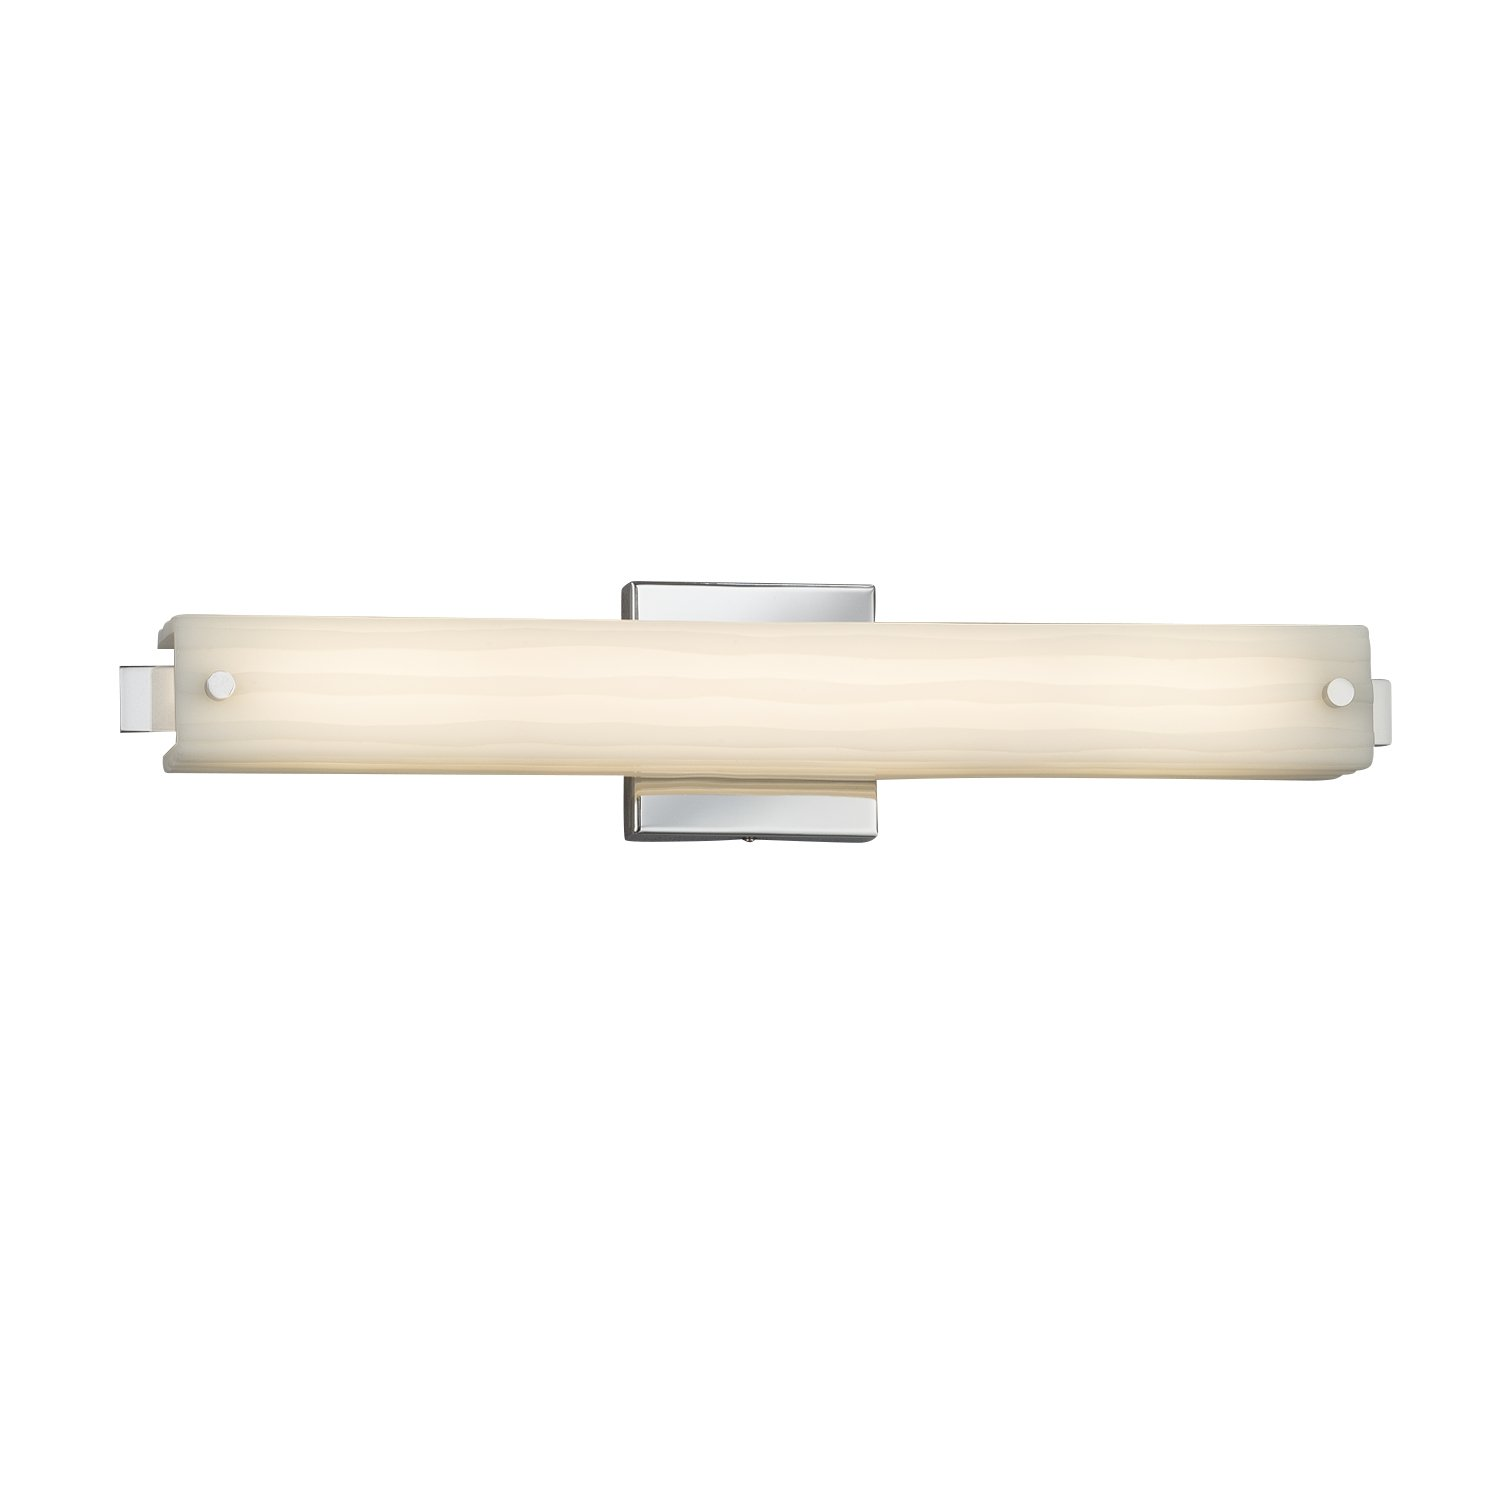 Brushed Nickel Finish Edge 23 LED Linear Wall//Bath Light Porcelina Faux Porcelain Shade with Waterfall Design